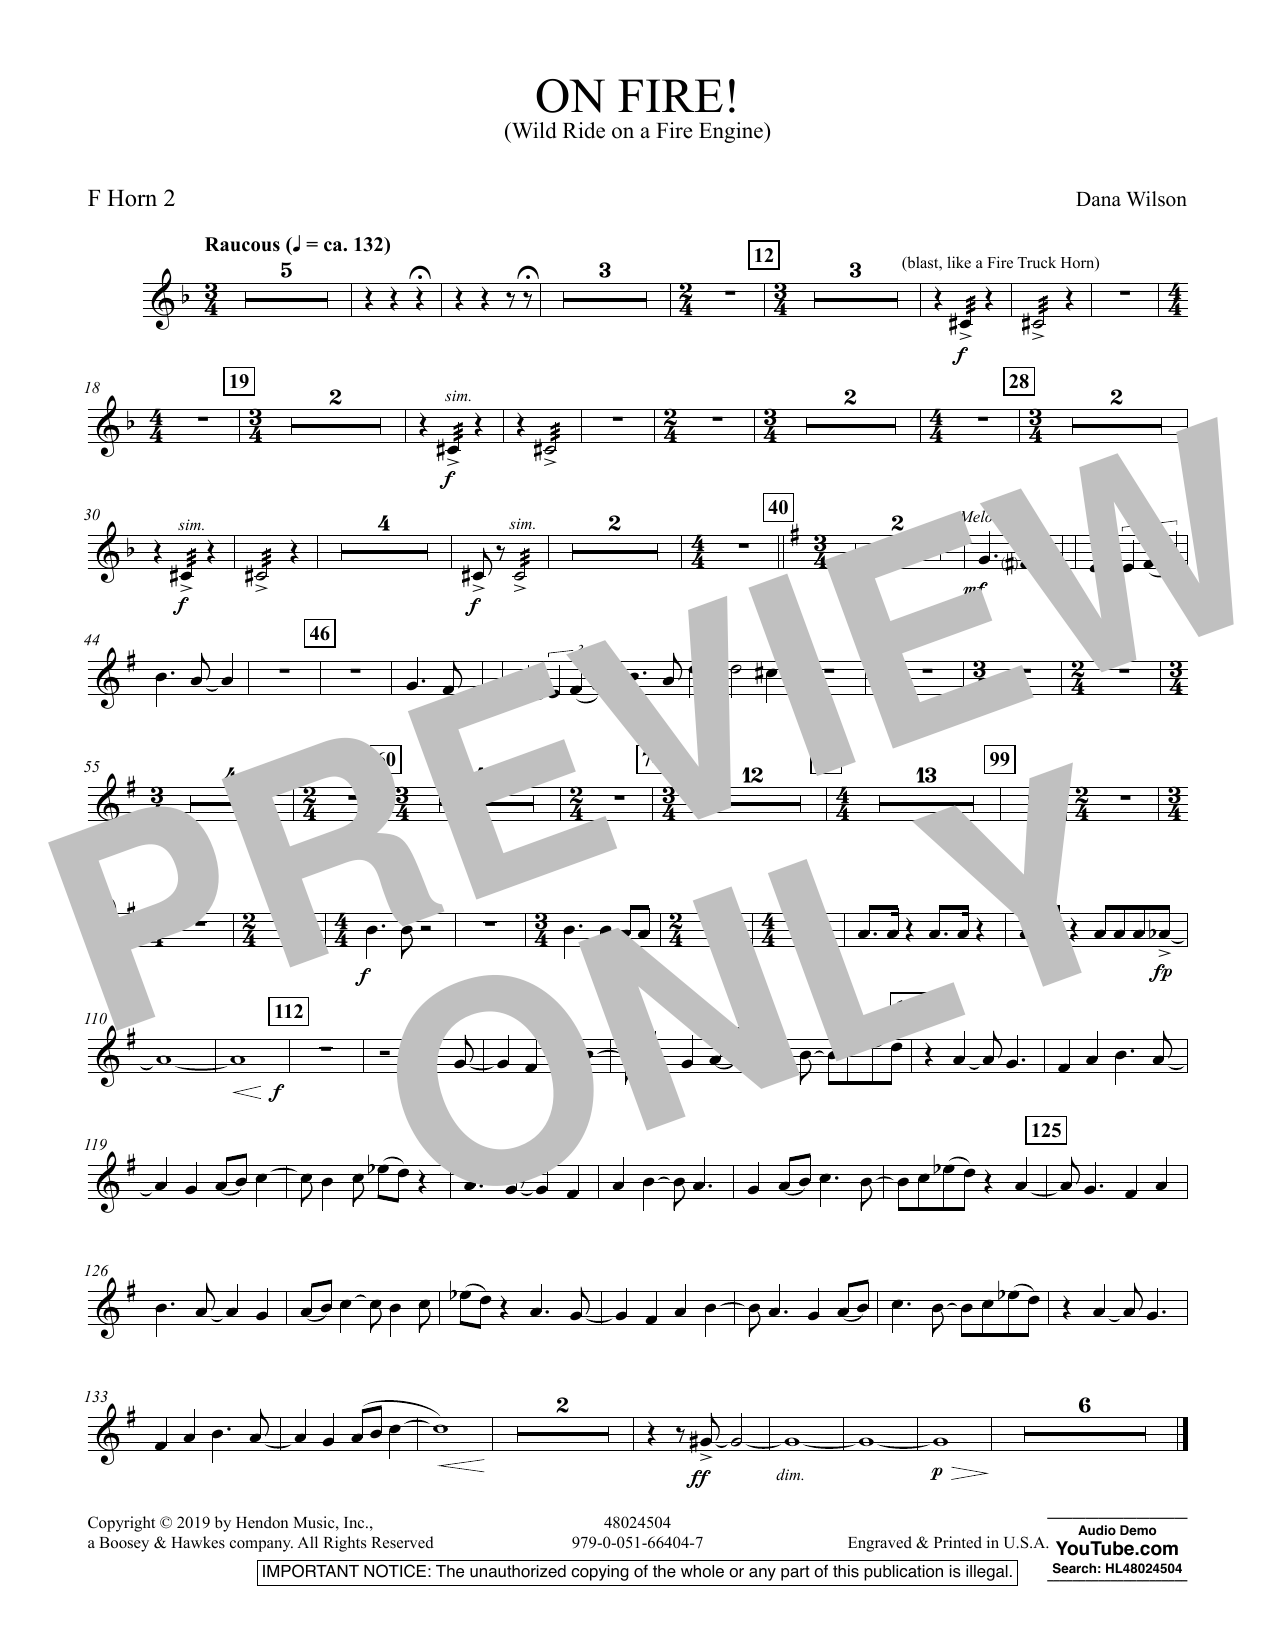 On Fire! (Wild Ride on a Fire Engine) - F Horn 2 (Concert Band)